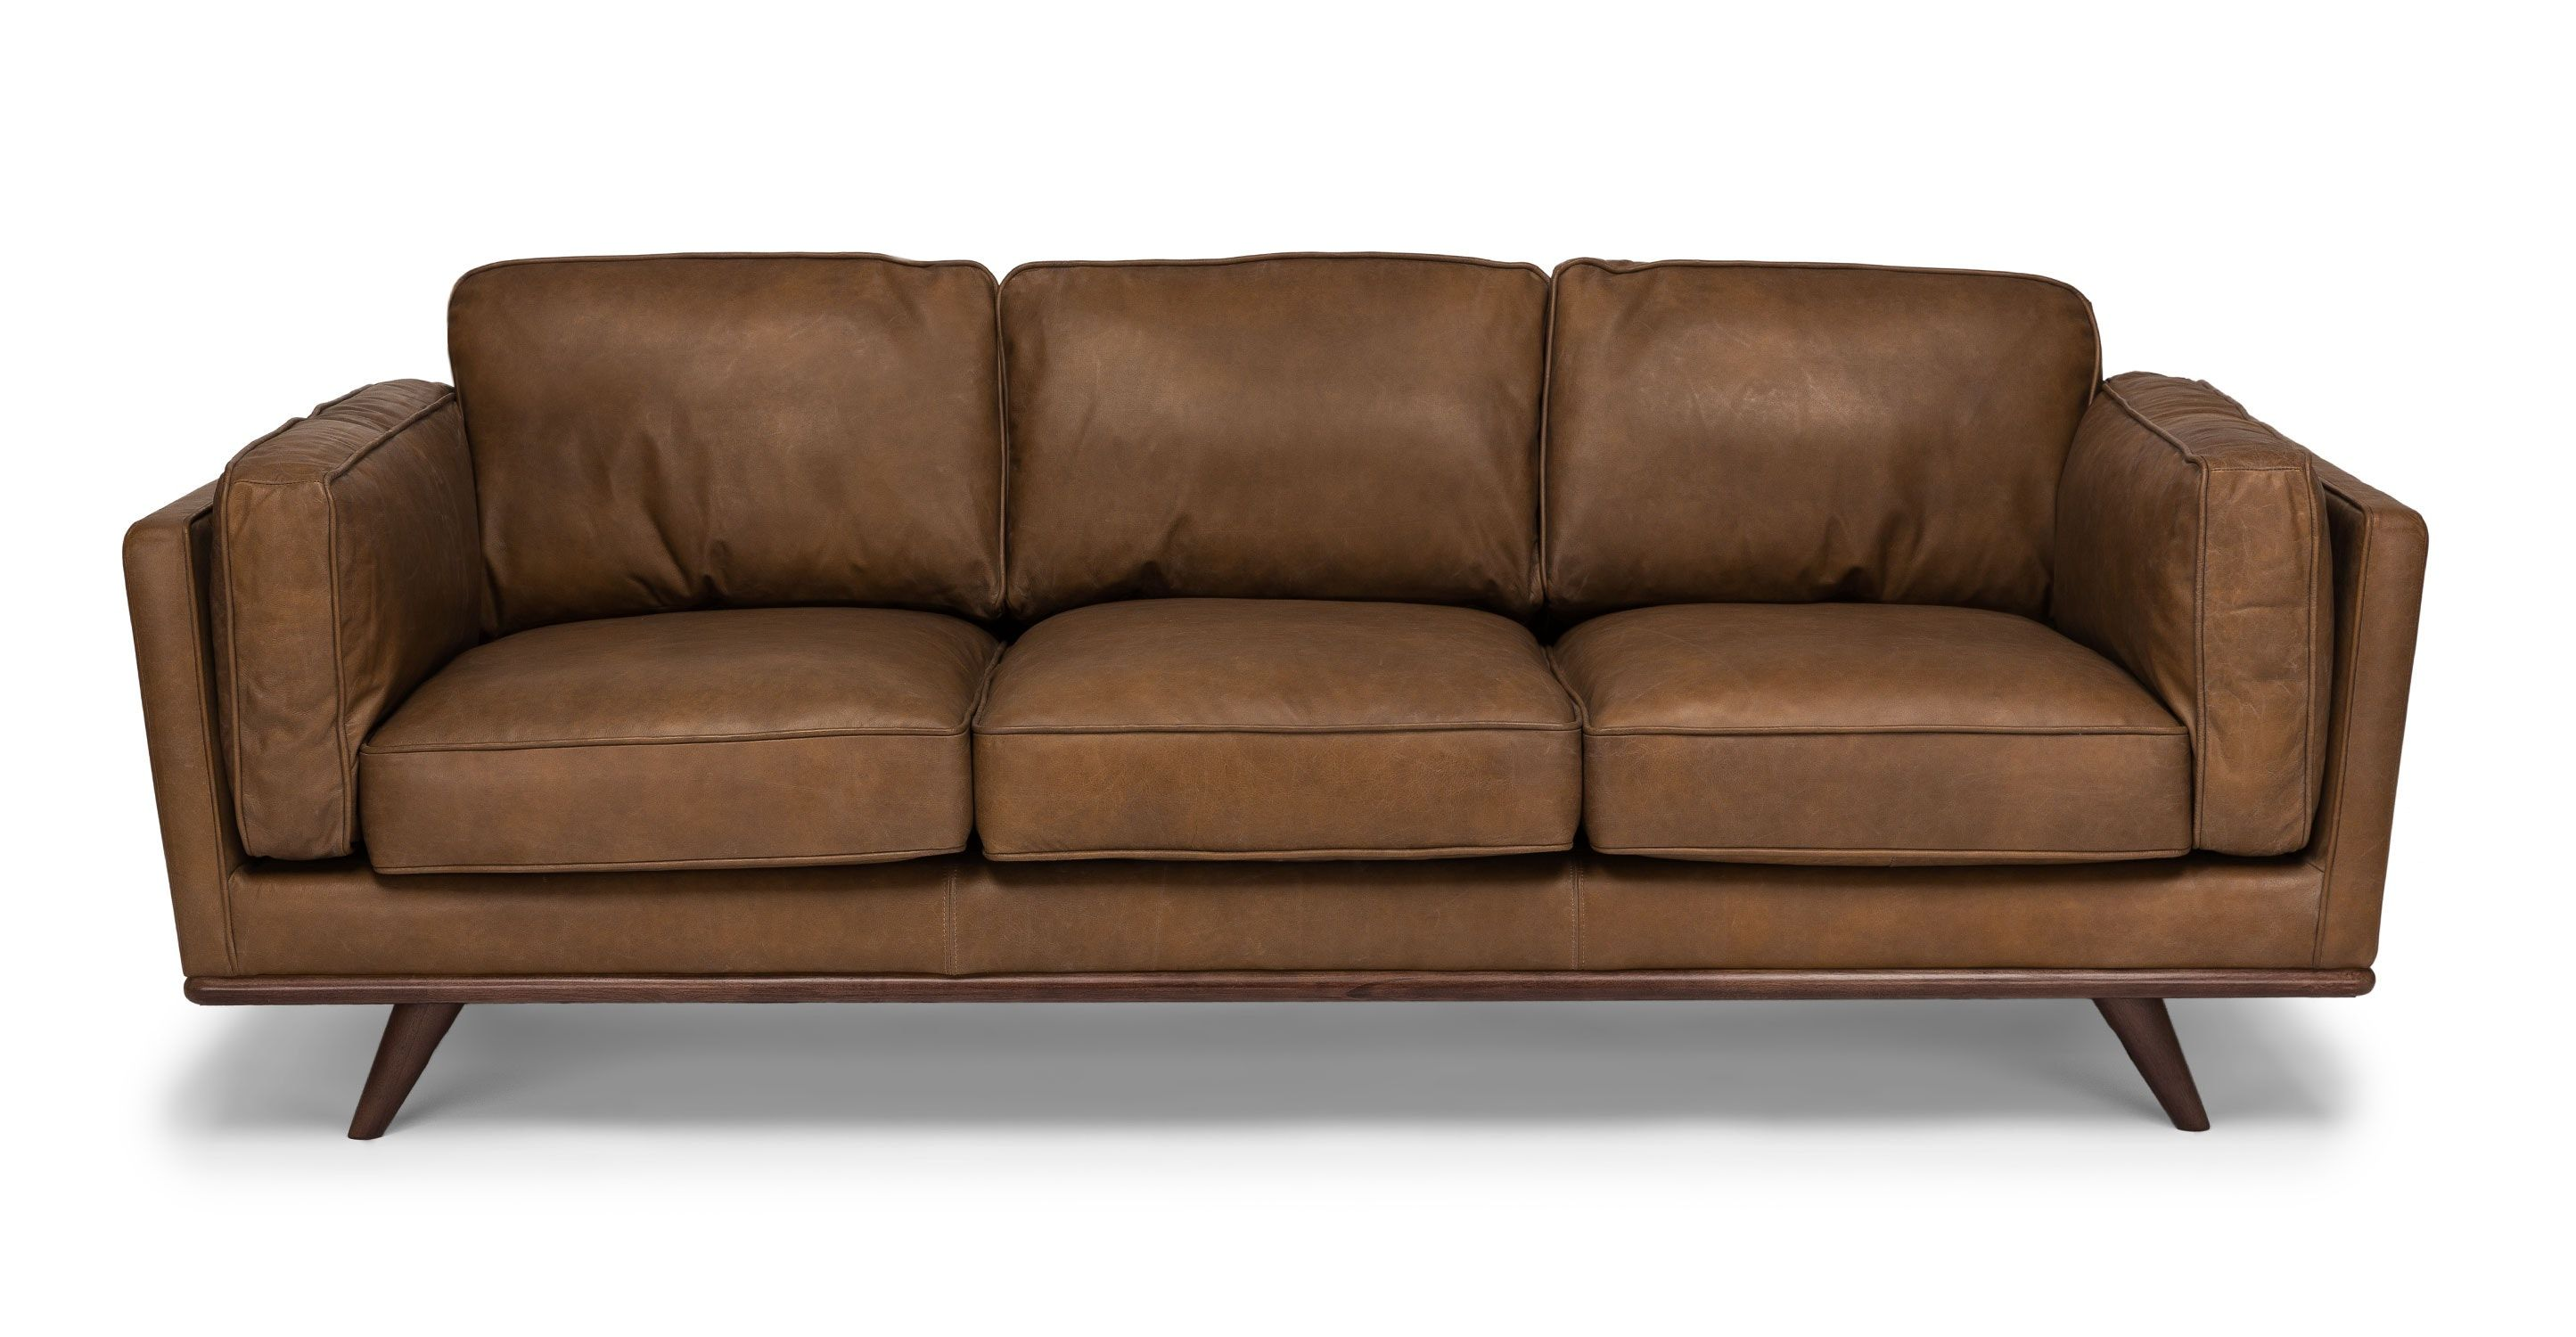 Small Sectional Sofa Tan Brown Leather Sofa Seater Article Timber Mid Century Modern Furniture